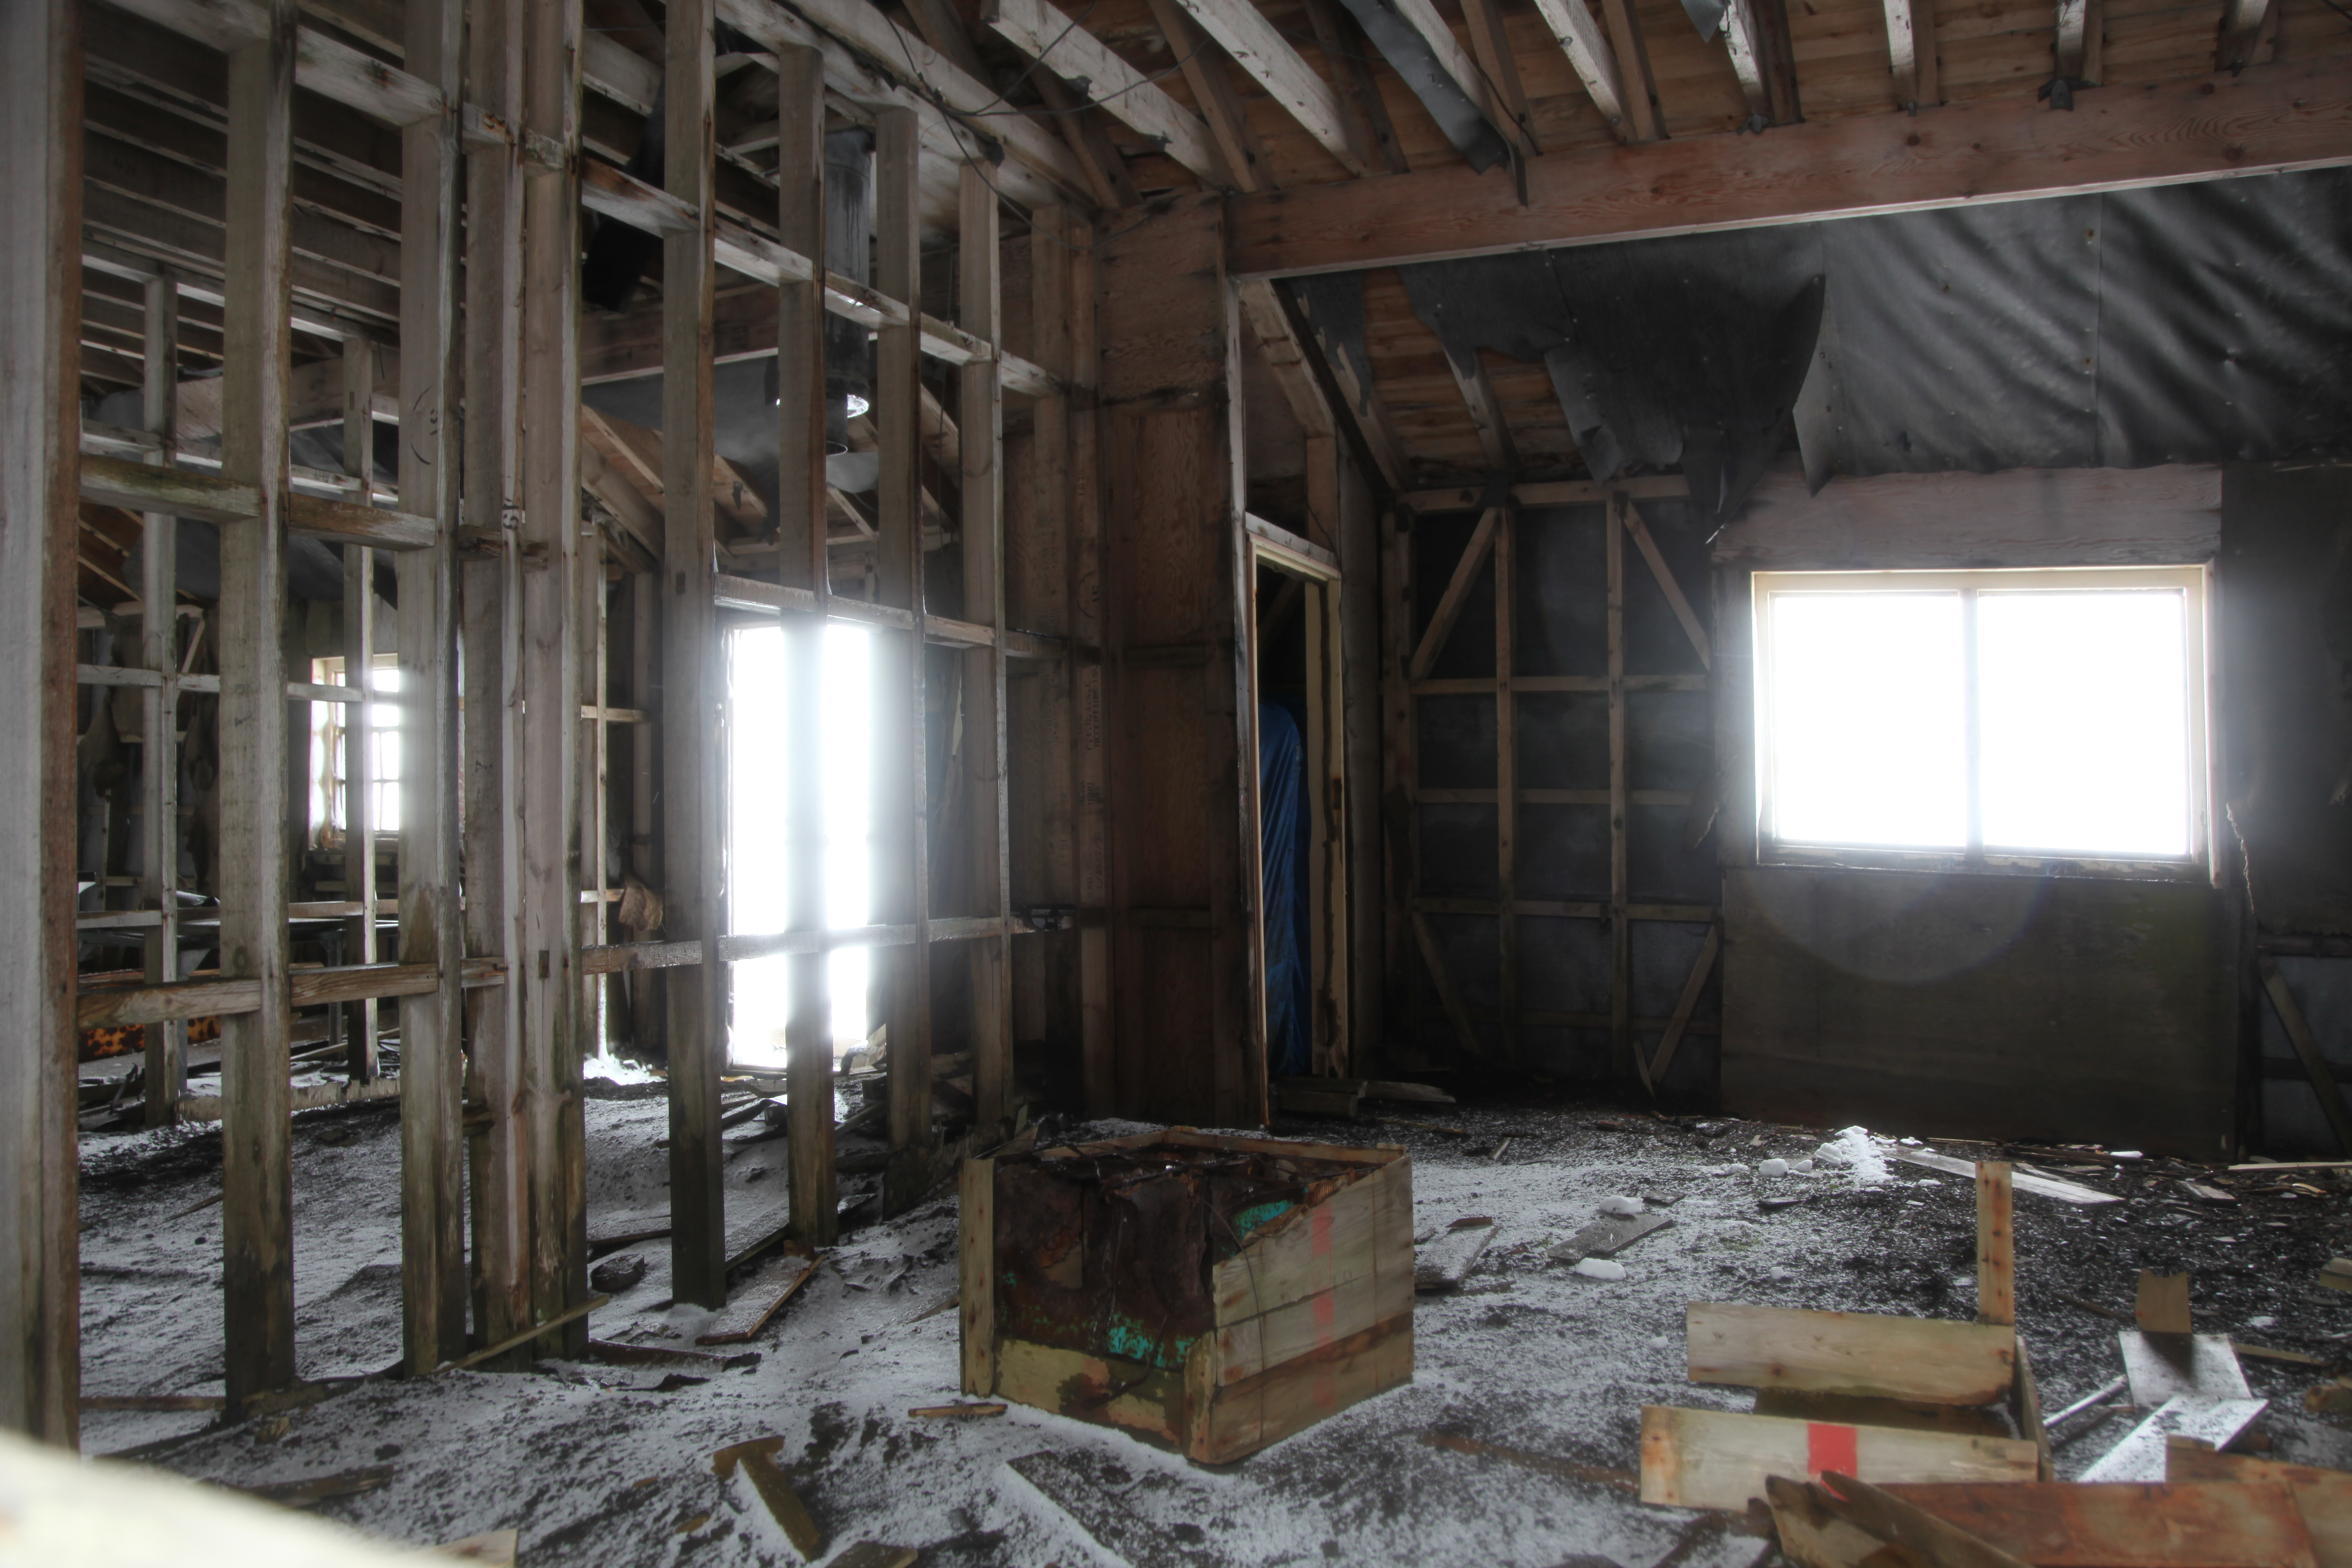 File:Looking inside an abandoned building at Whalers Bay ...